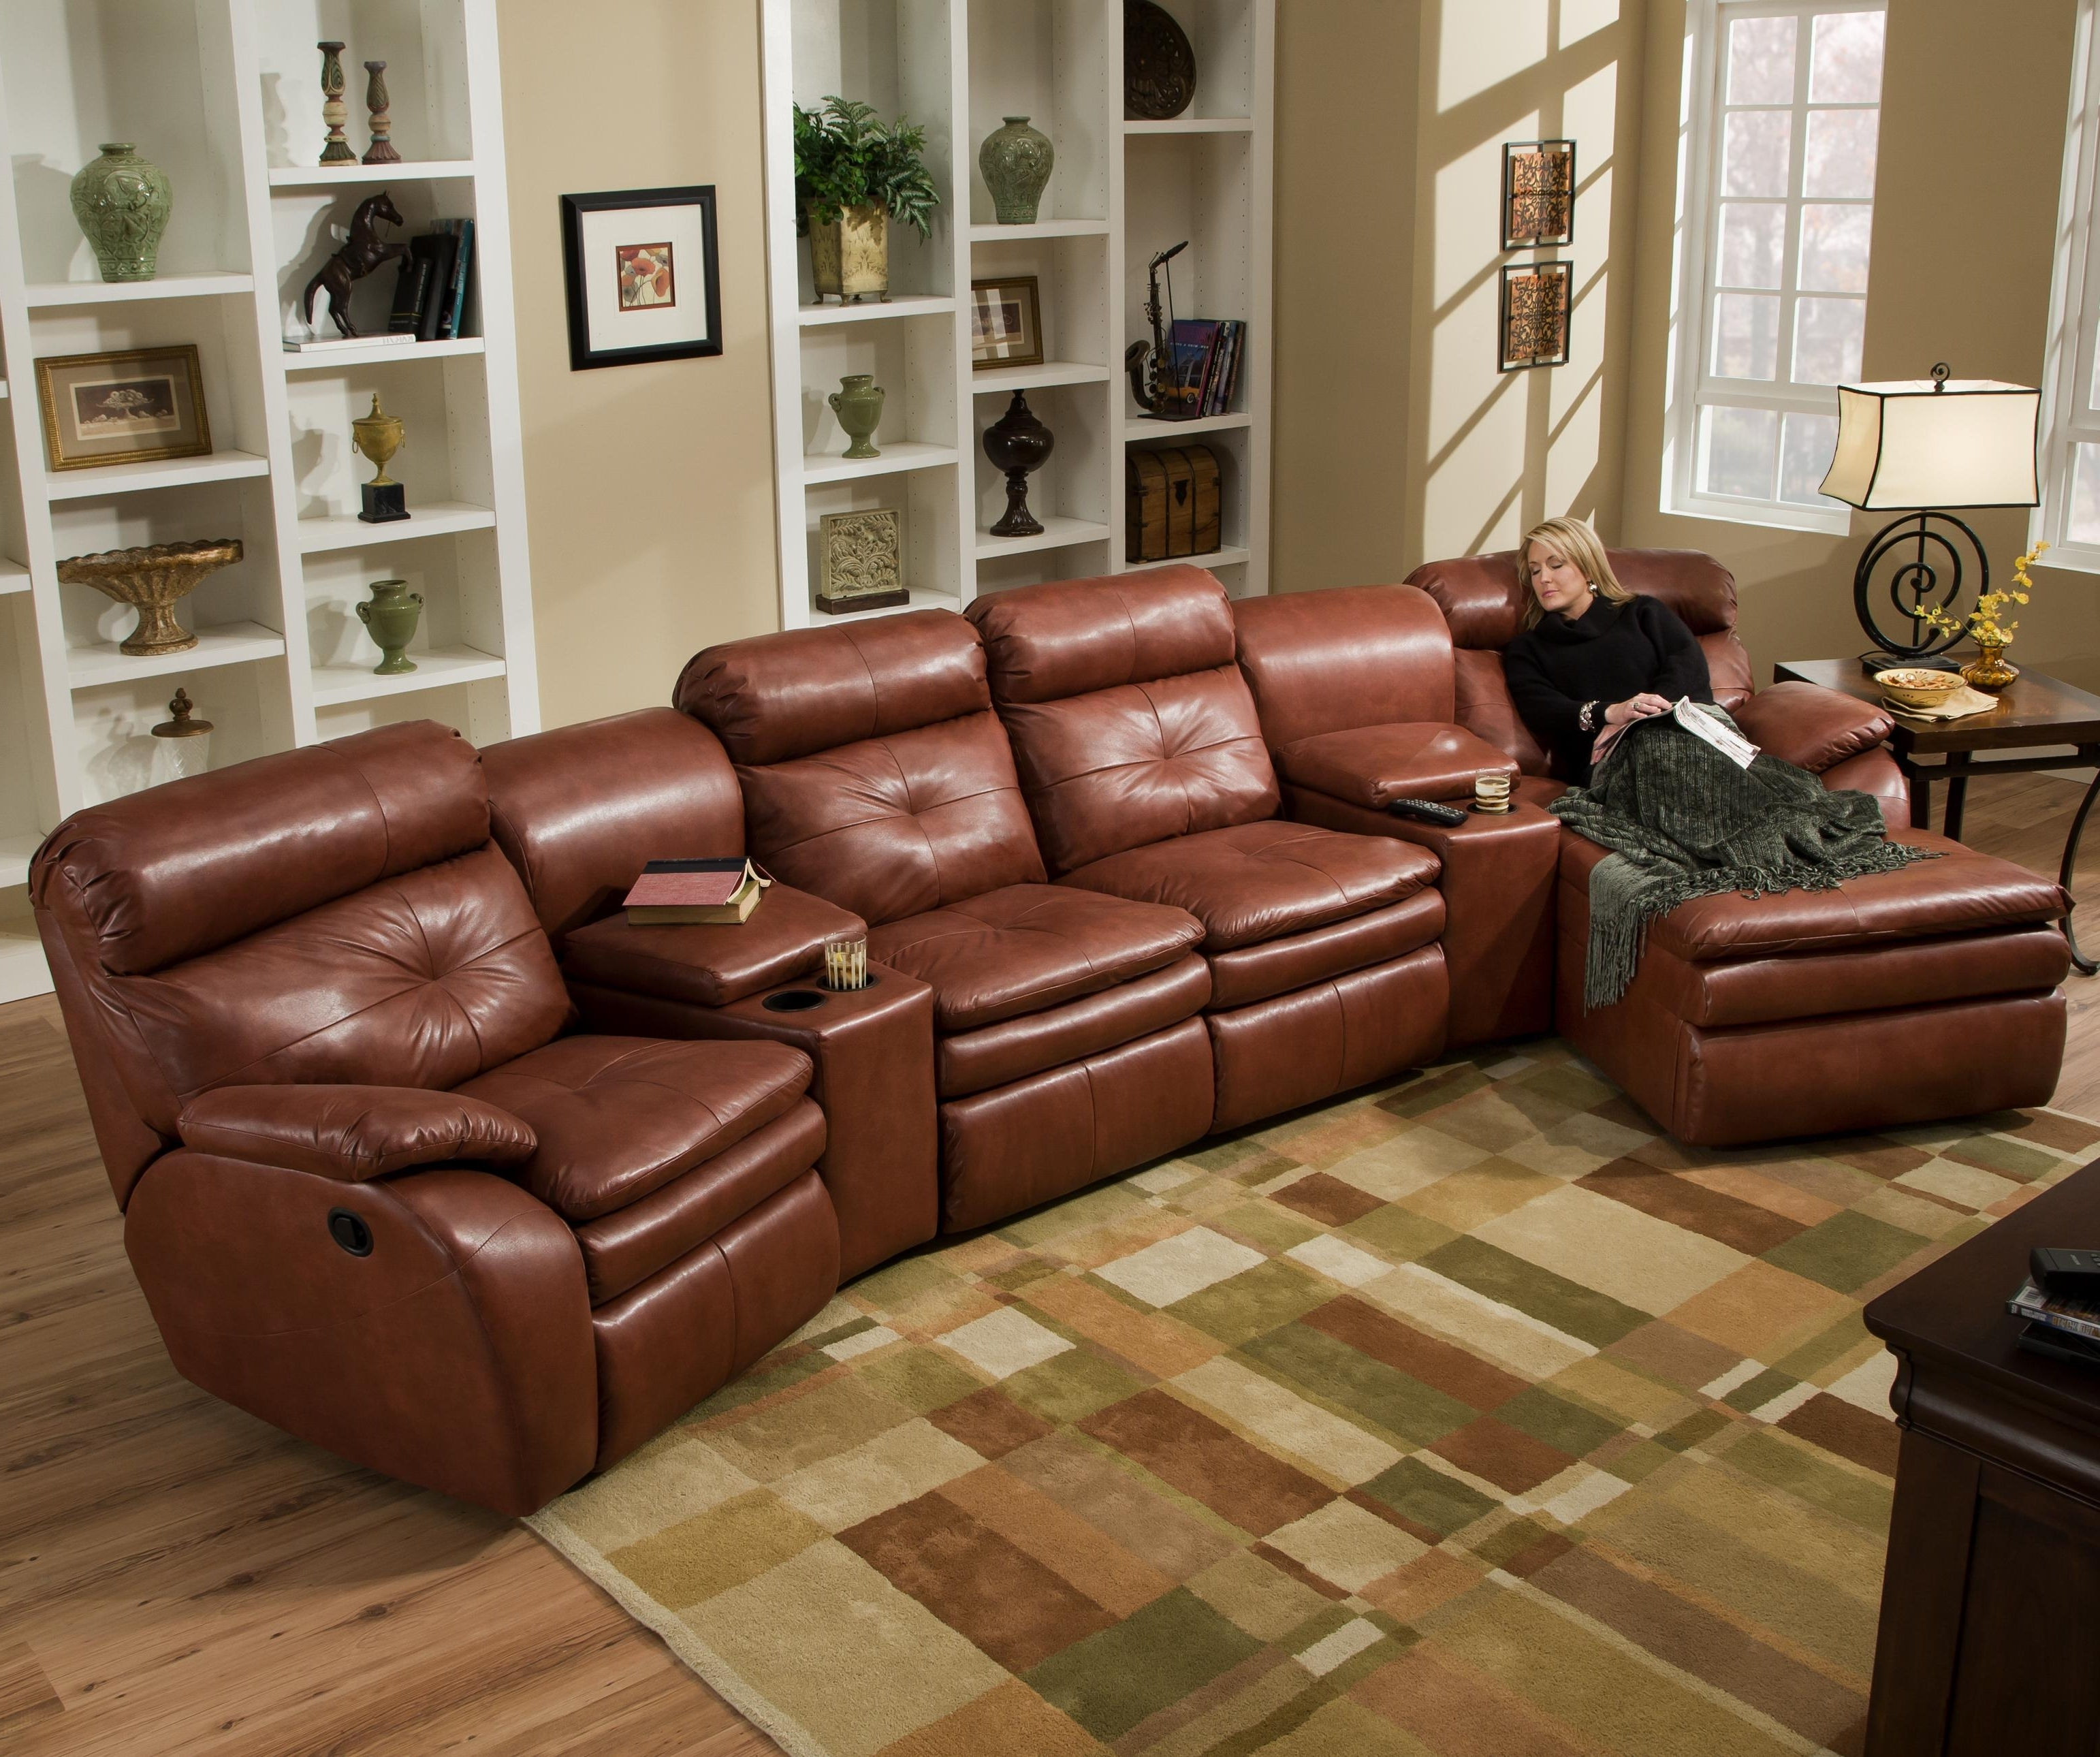 Most Current Chaise Recliners In Loveseat Sectional With Chaise Apartment Size Sofa Dimensions Lazy (View 5 of 15)